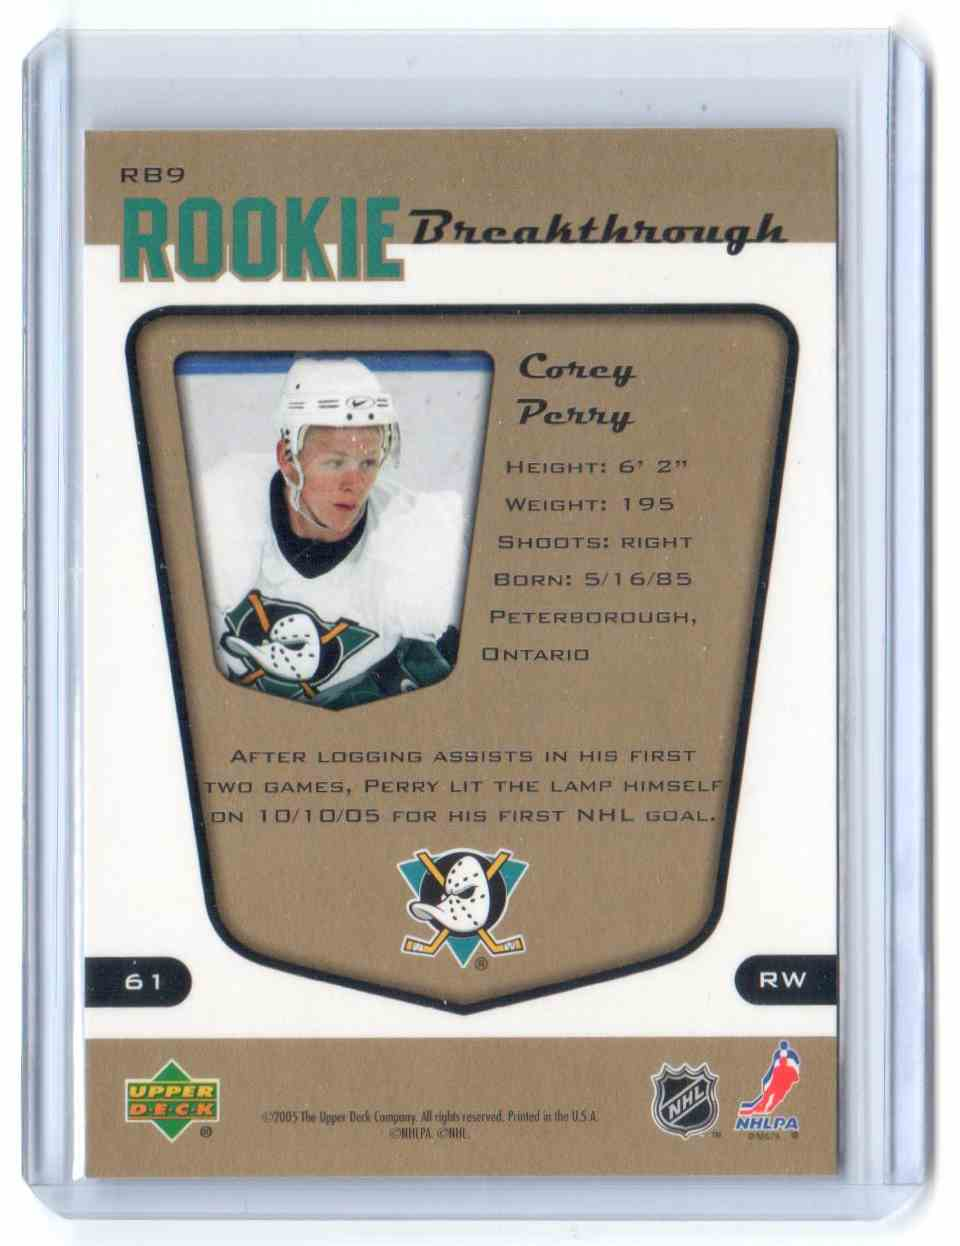 2005-06 Upper Deck MVP Rookie Breaktrough Corey Perry #RB9 card back image